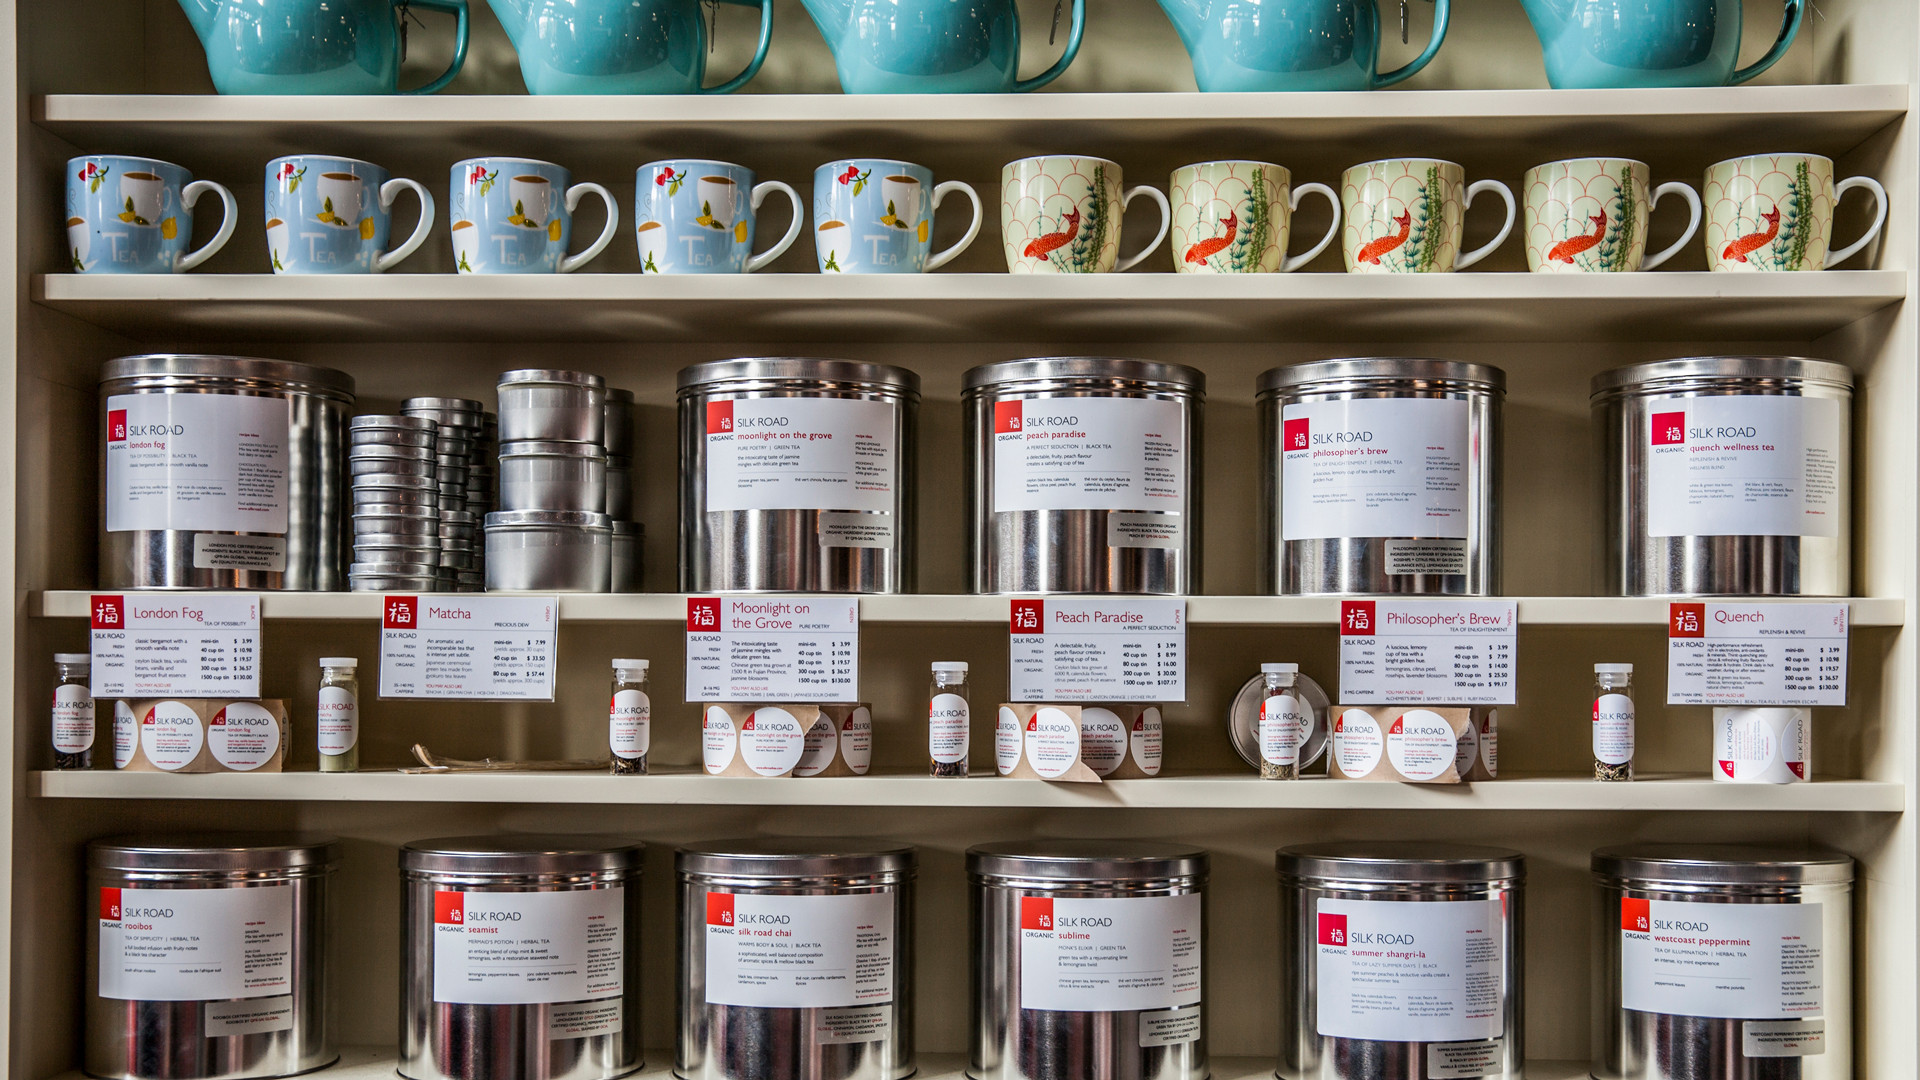 Restaurants in Victoria, B.C. plus hotels, activities and more | Shelves lined with tins of tea and mugs